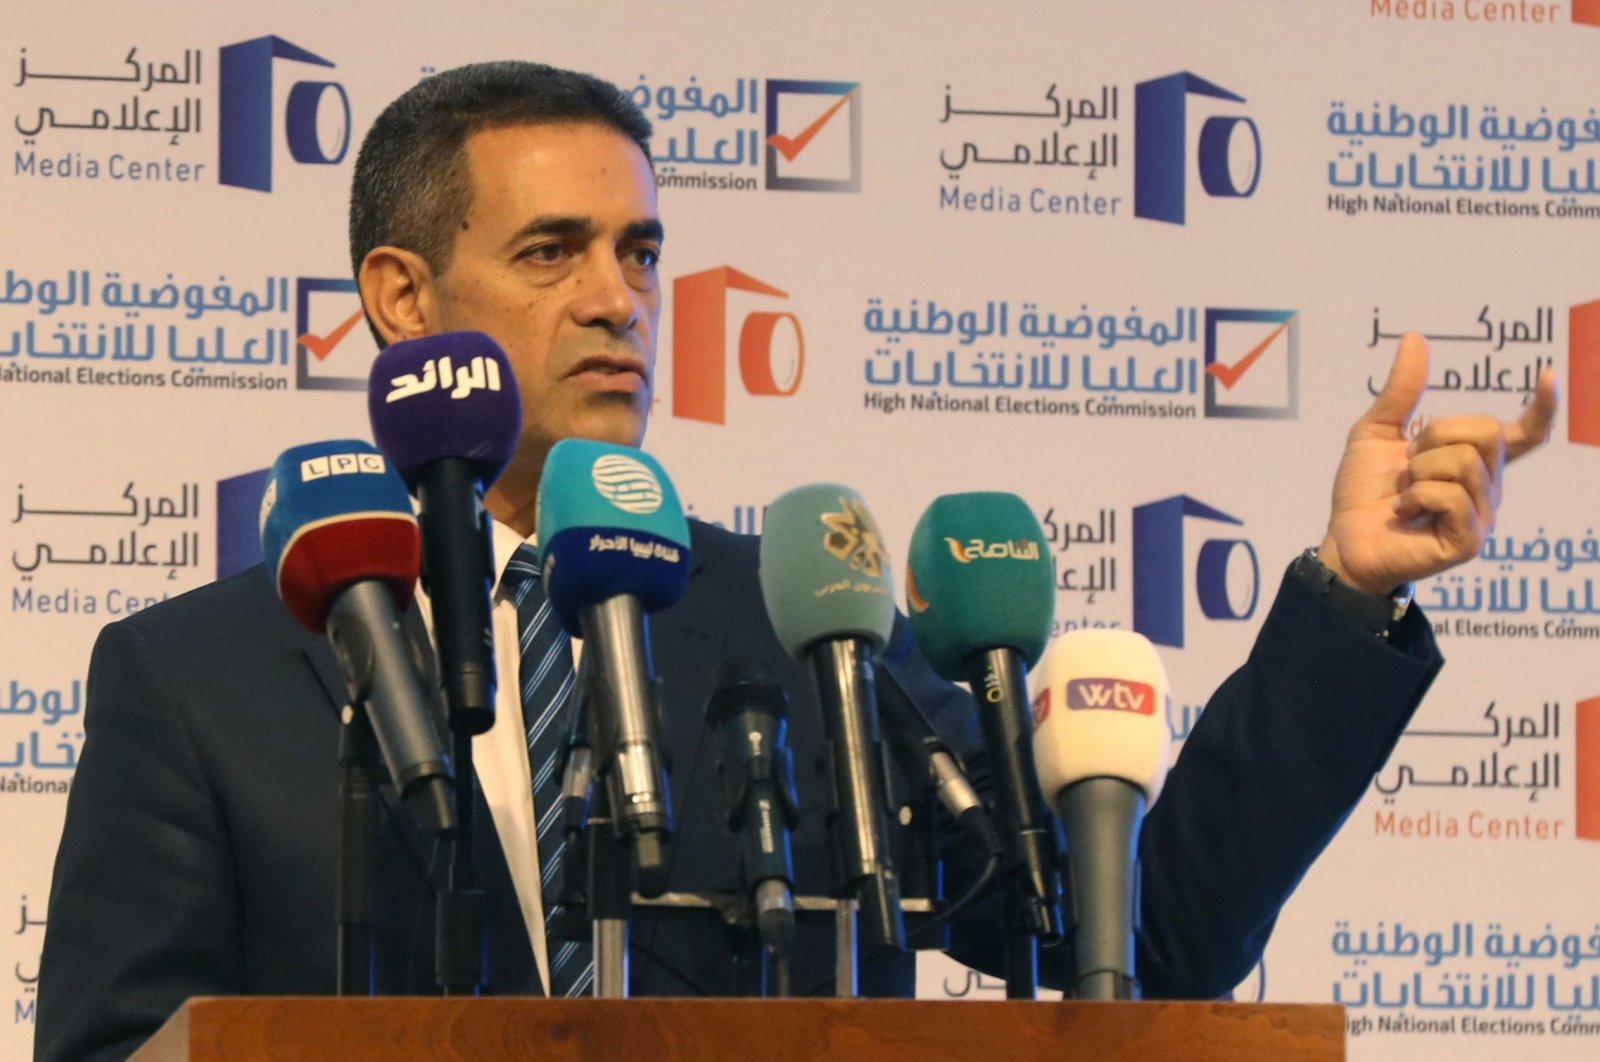 Imad al-Sayeh, the head of Libya's national elections commission, speaks during a press conference in the capital Tripoli, Libya, Aug. 17, 2021. (AFP Photo)